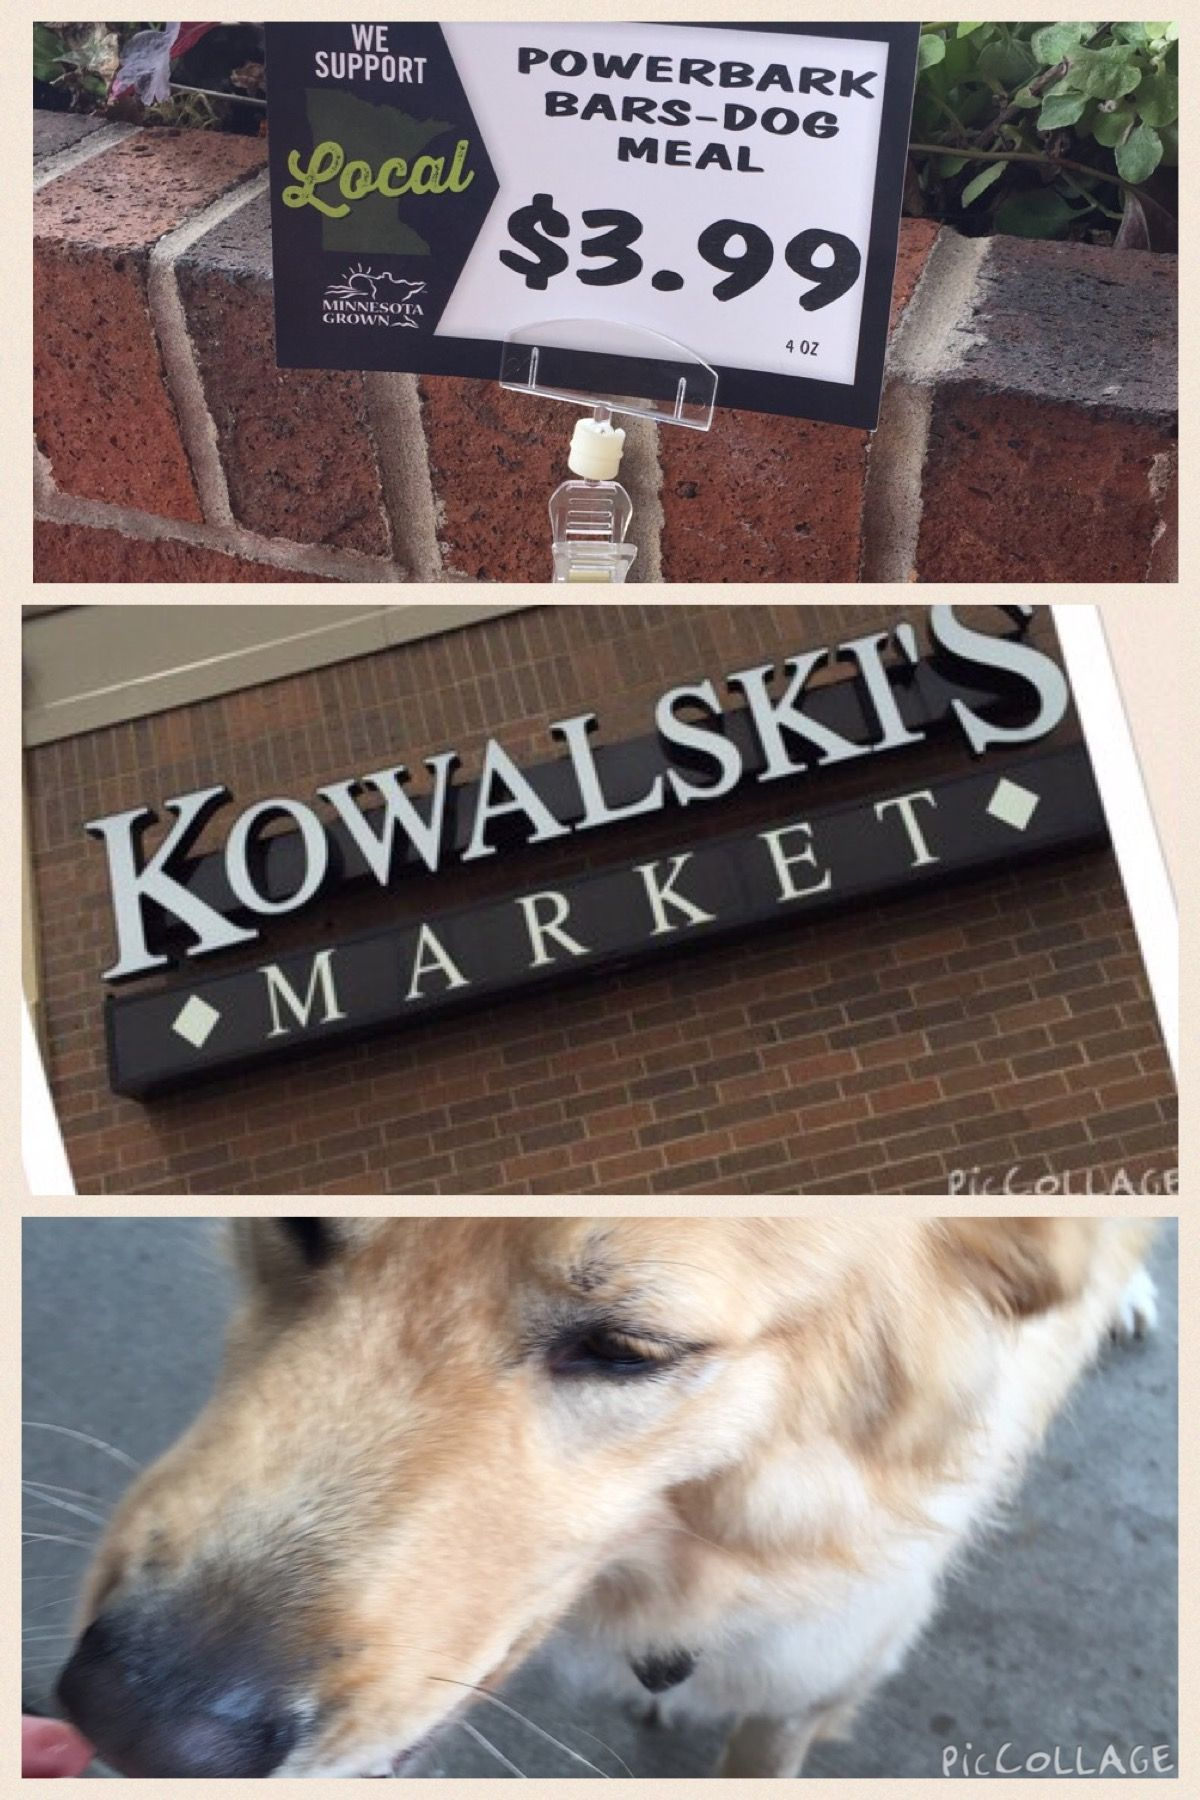 Shop local event at Kowalski's